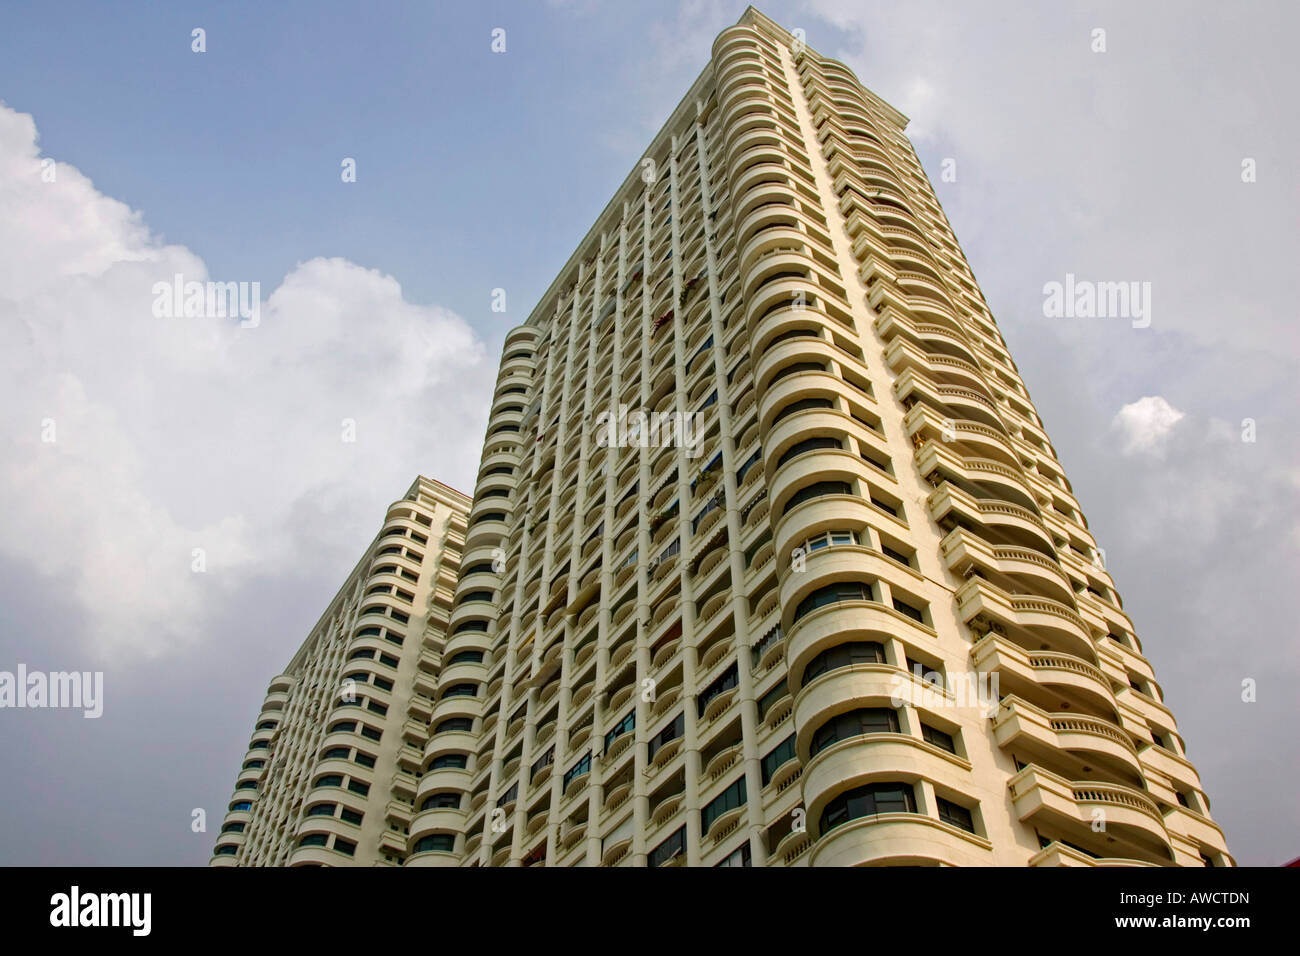 Typical apartment building where flats are rented by the week or month or sold as condos in Pattaya, Thailand, Southeast - Stock Image